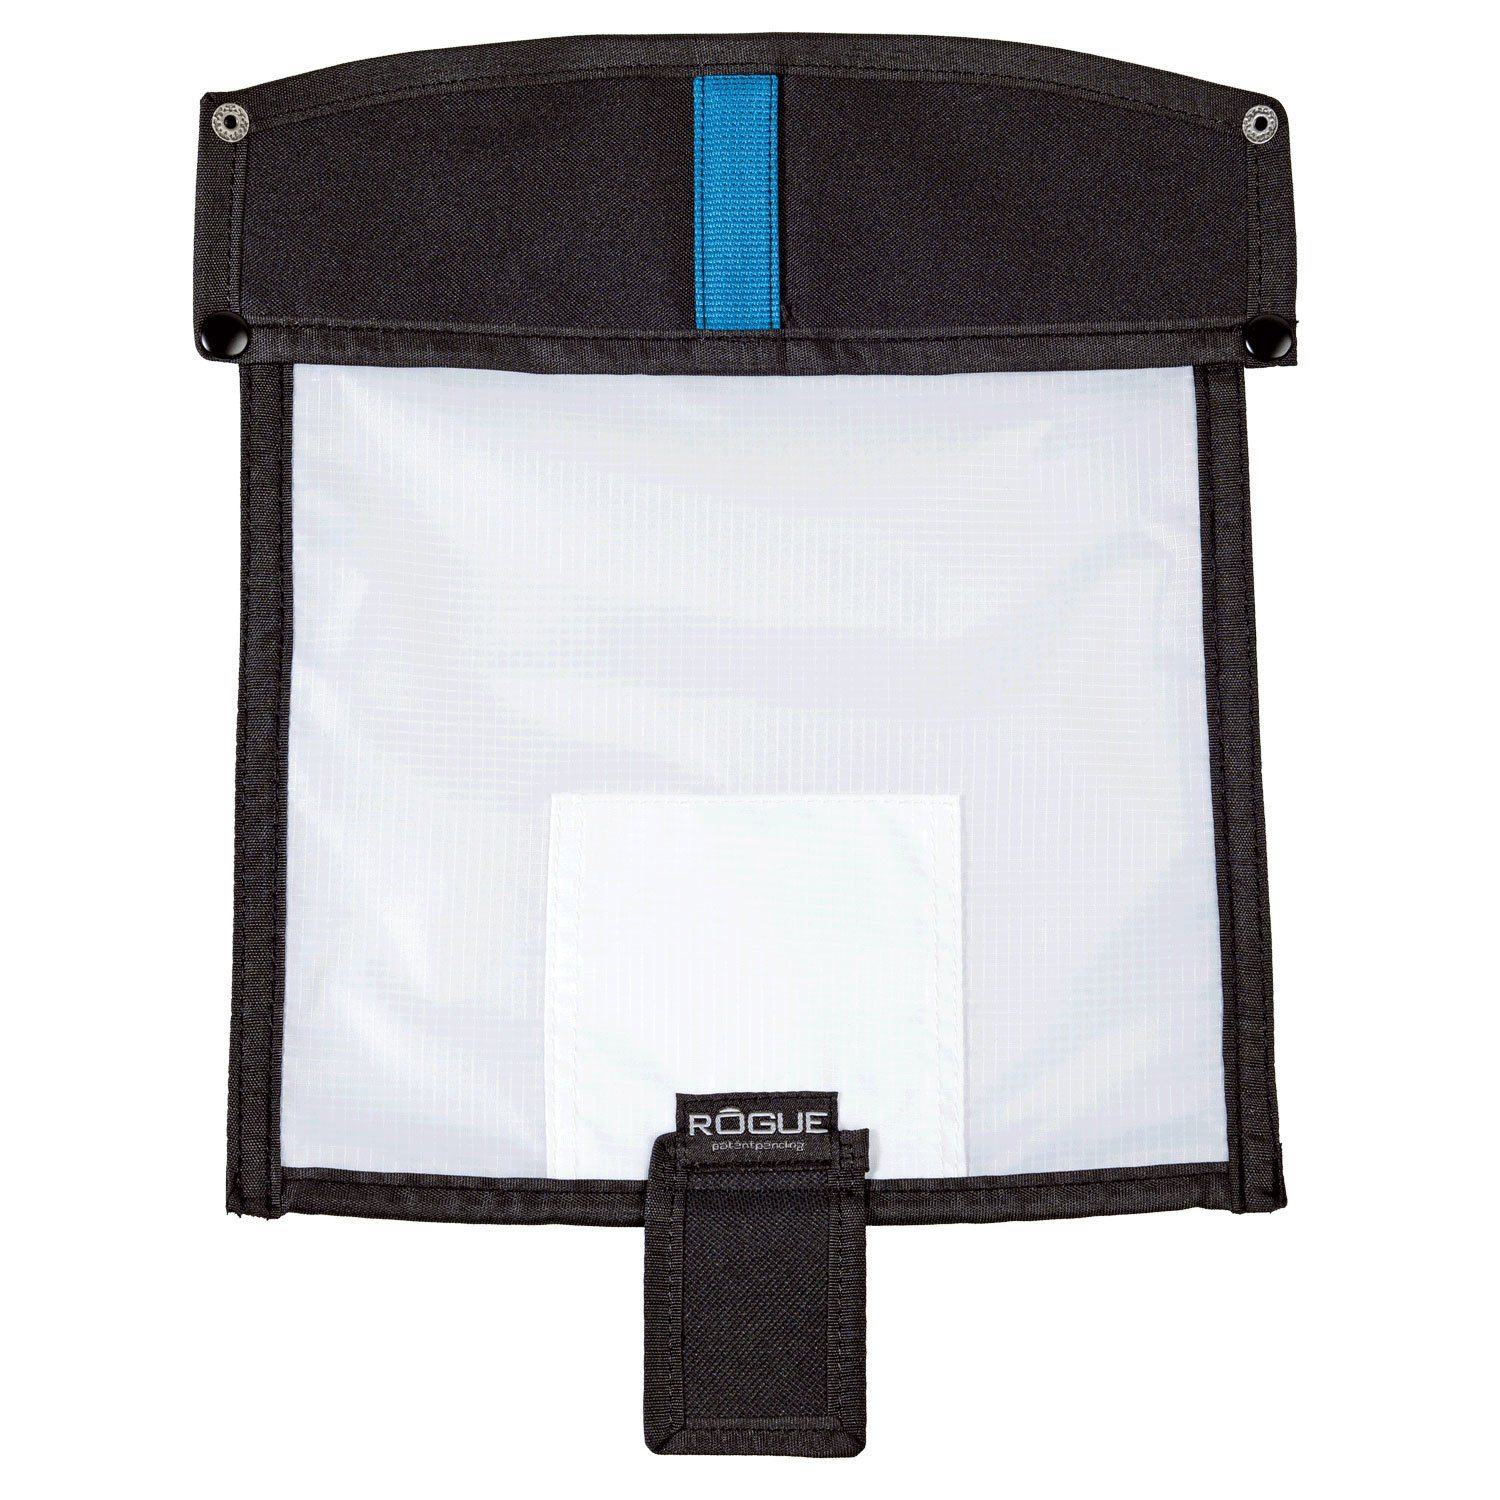 Rogue Photographic Design Rogue FlashBender 2 (Second Generation) - LARGE Soft Box Kit (Black/White) by Rogue Photographic Design (Image #3)